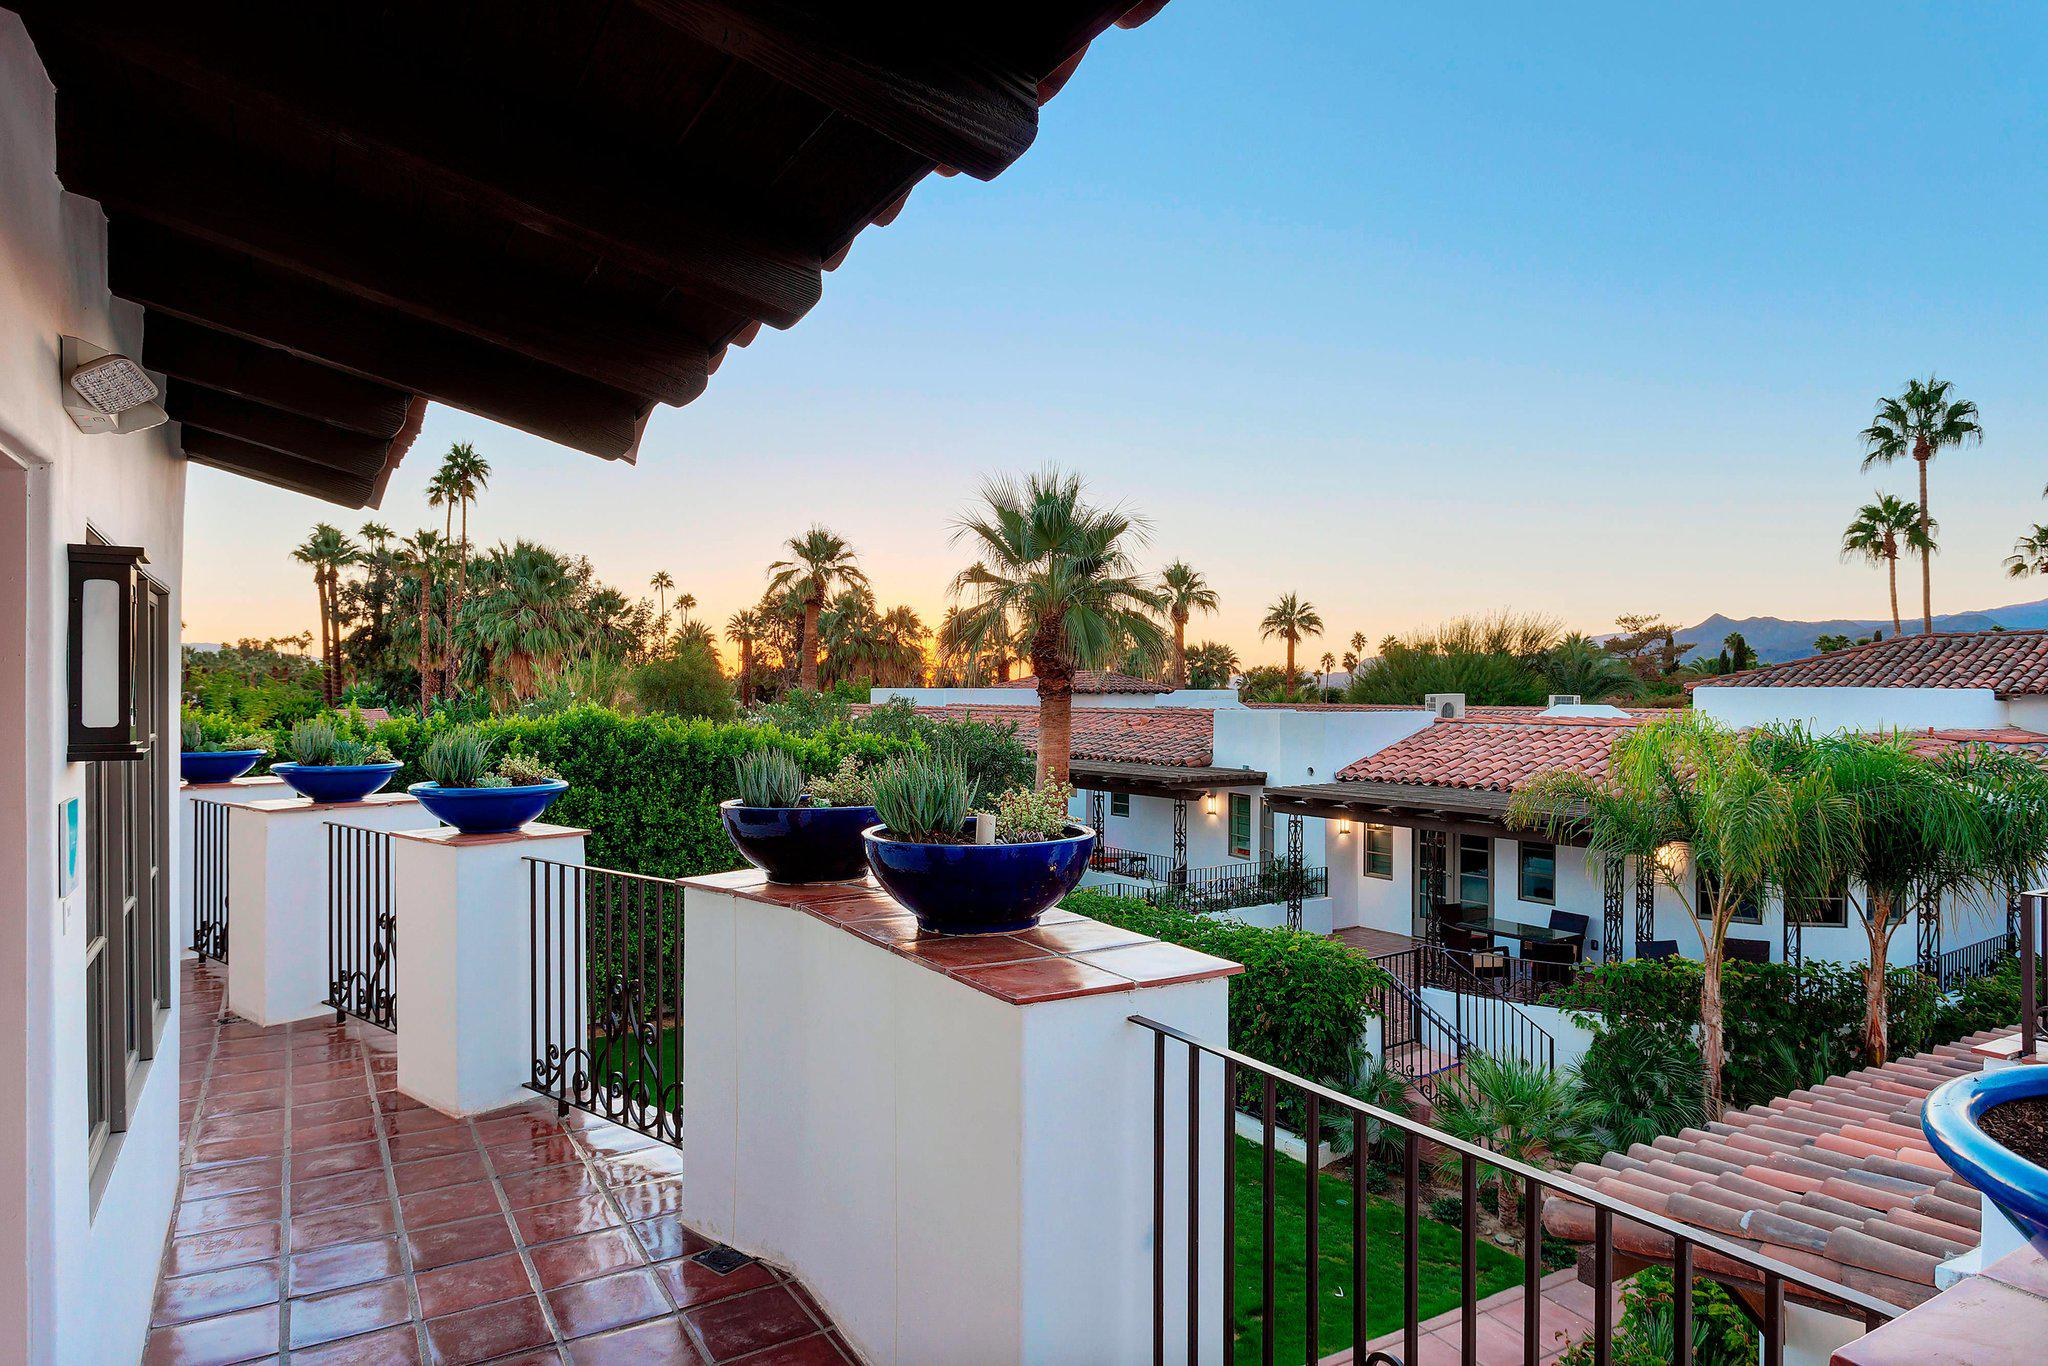 Triada Palm Springs, Autograph Collection